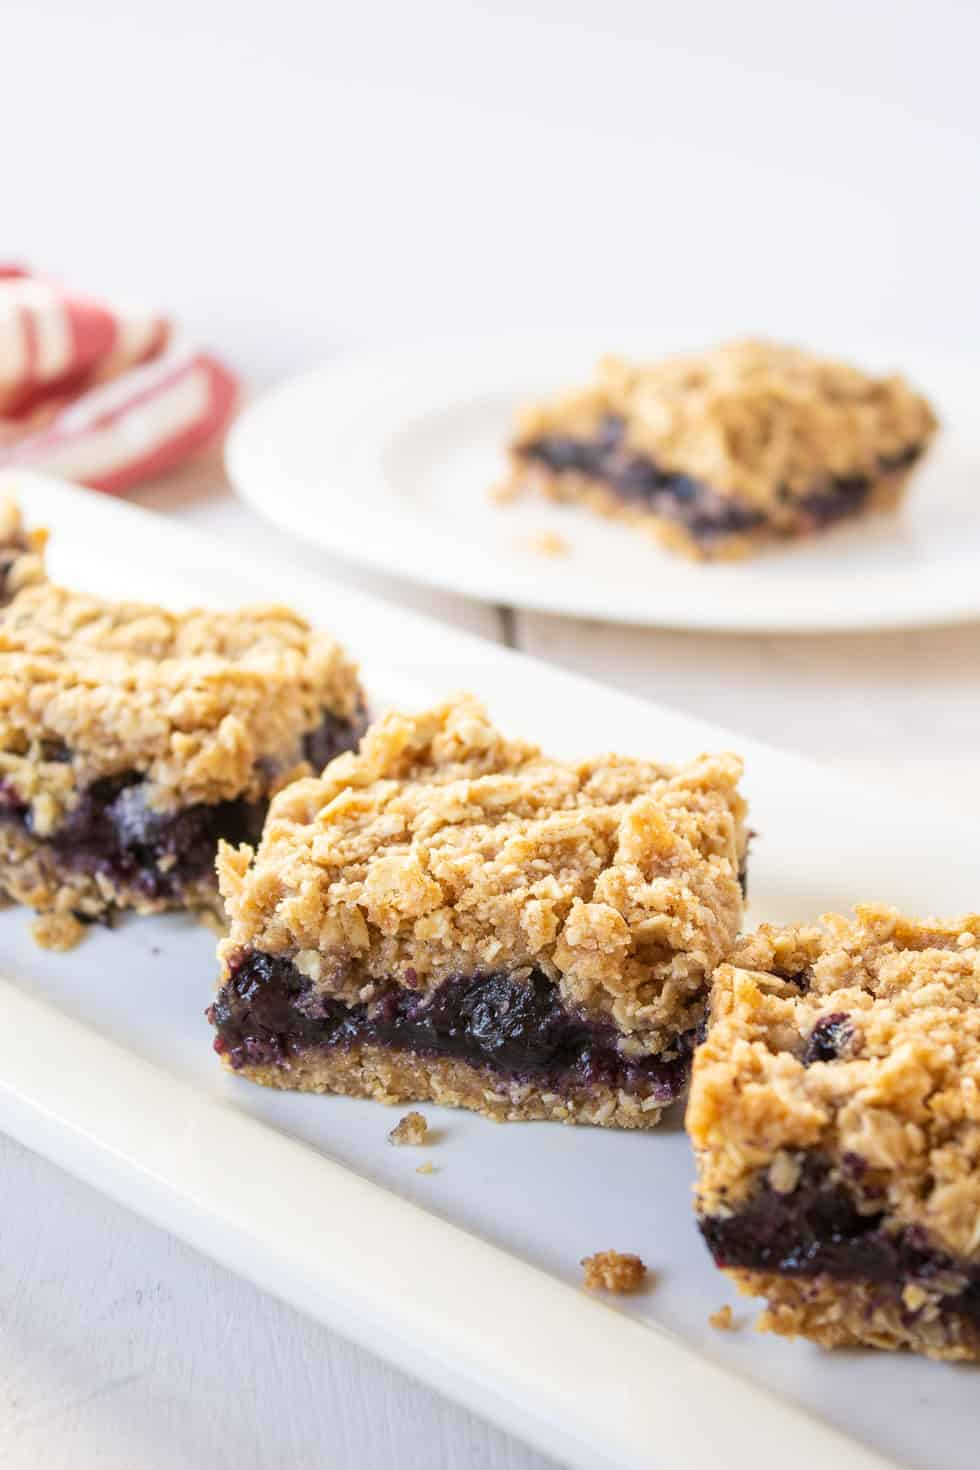 Blueberry bars with an oatmeal crumb topping.